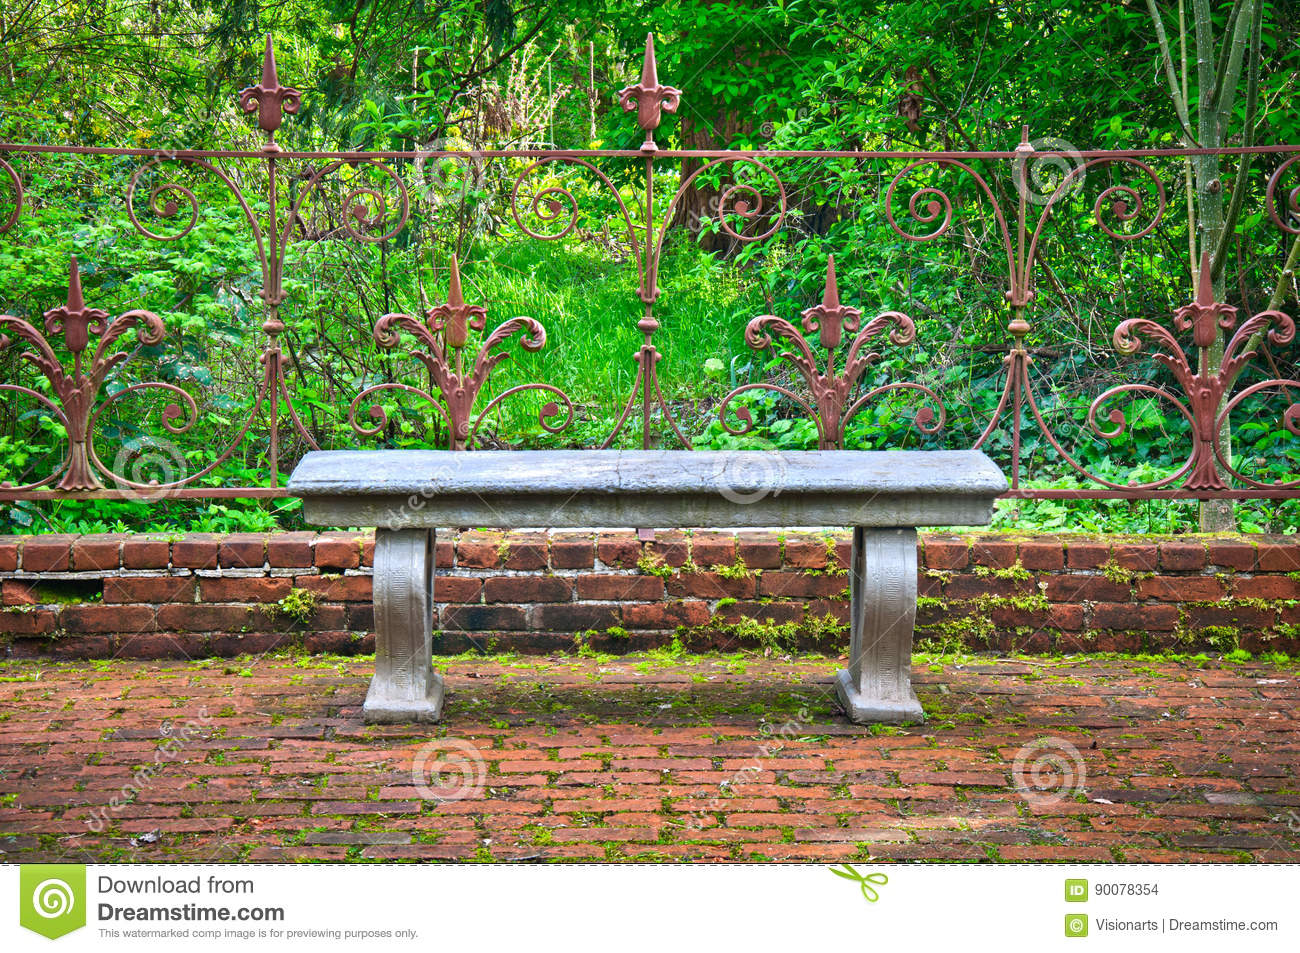 Cool Old Bench In Formal English Garden With Ornate Wrought Iron Gmtry Best Dining Table And Chair Ideas Images Gmtryco